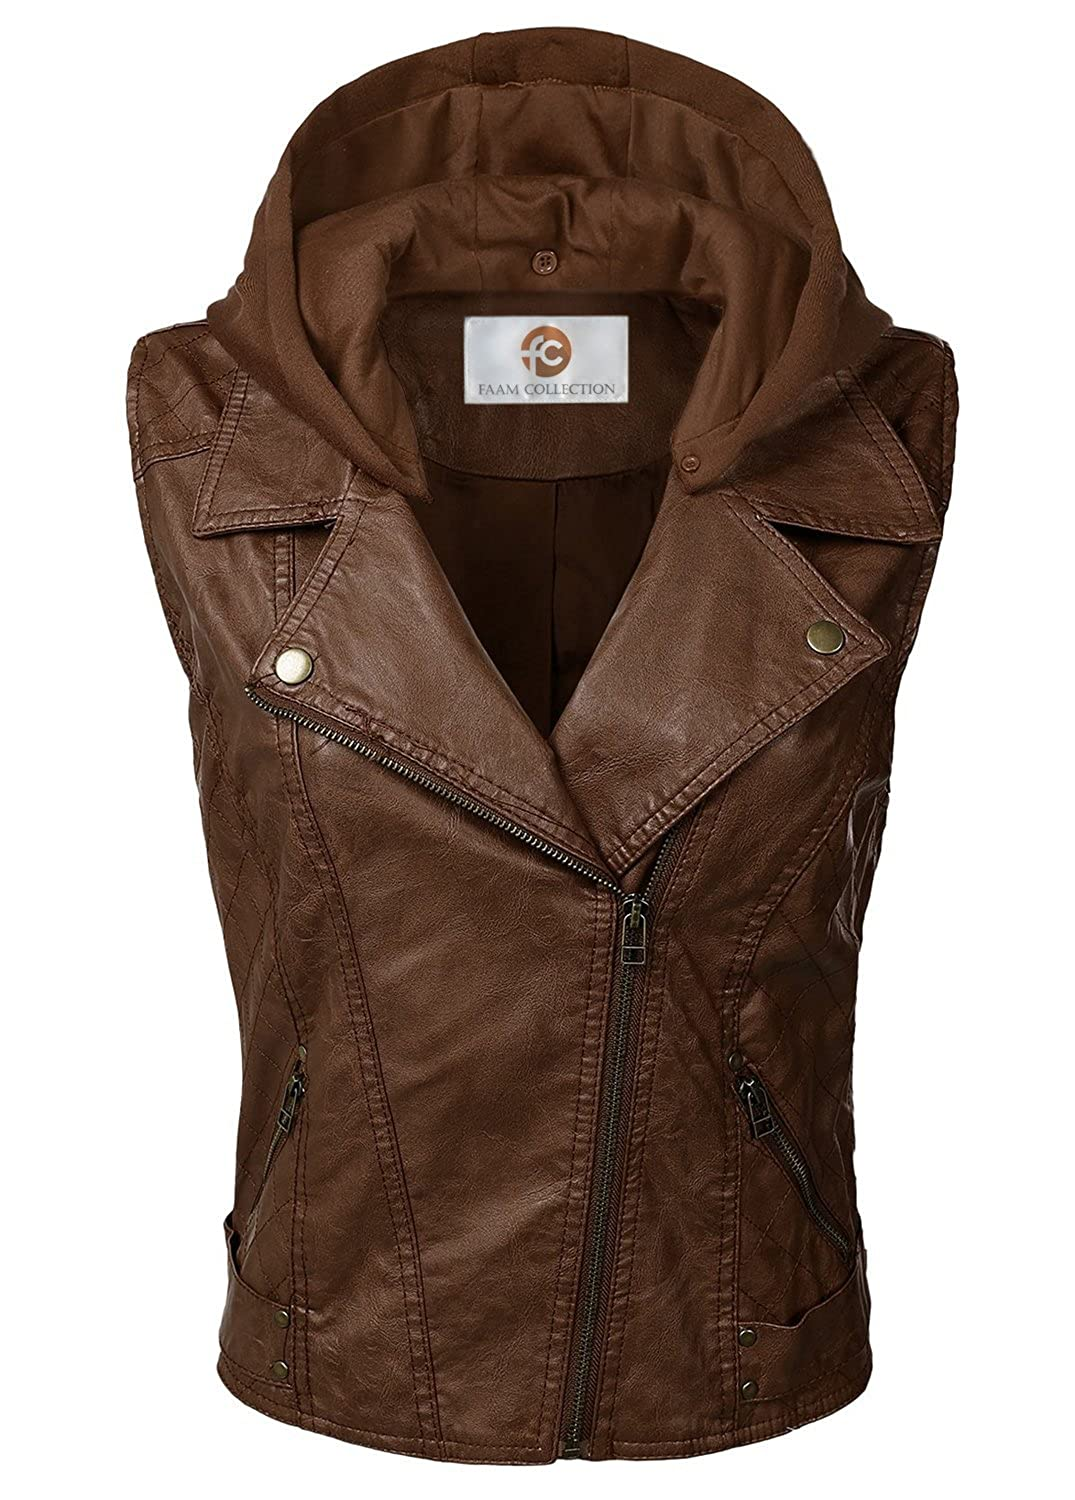 Faam Collection Special Brown Lambskin Leather Hood with Fabric Hood for Women